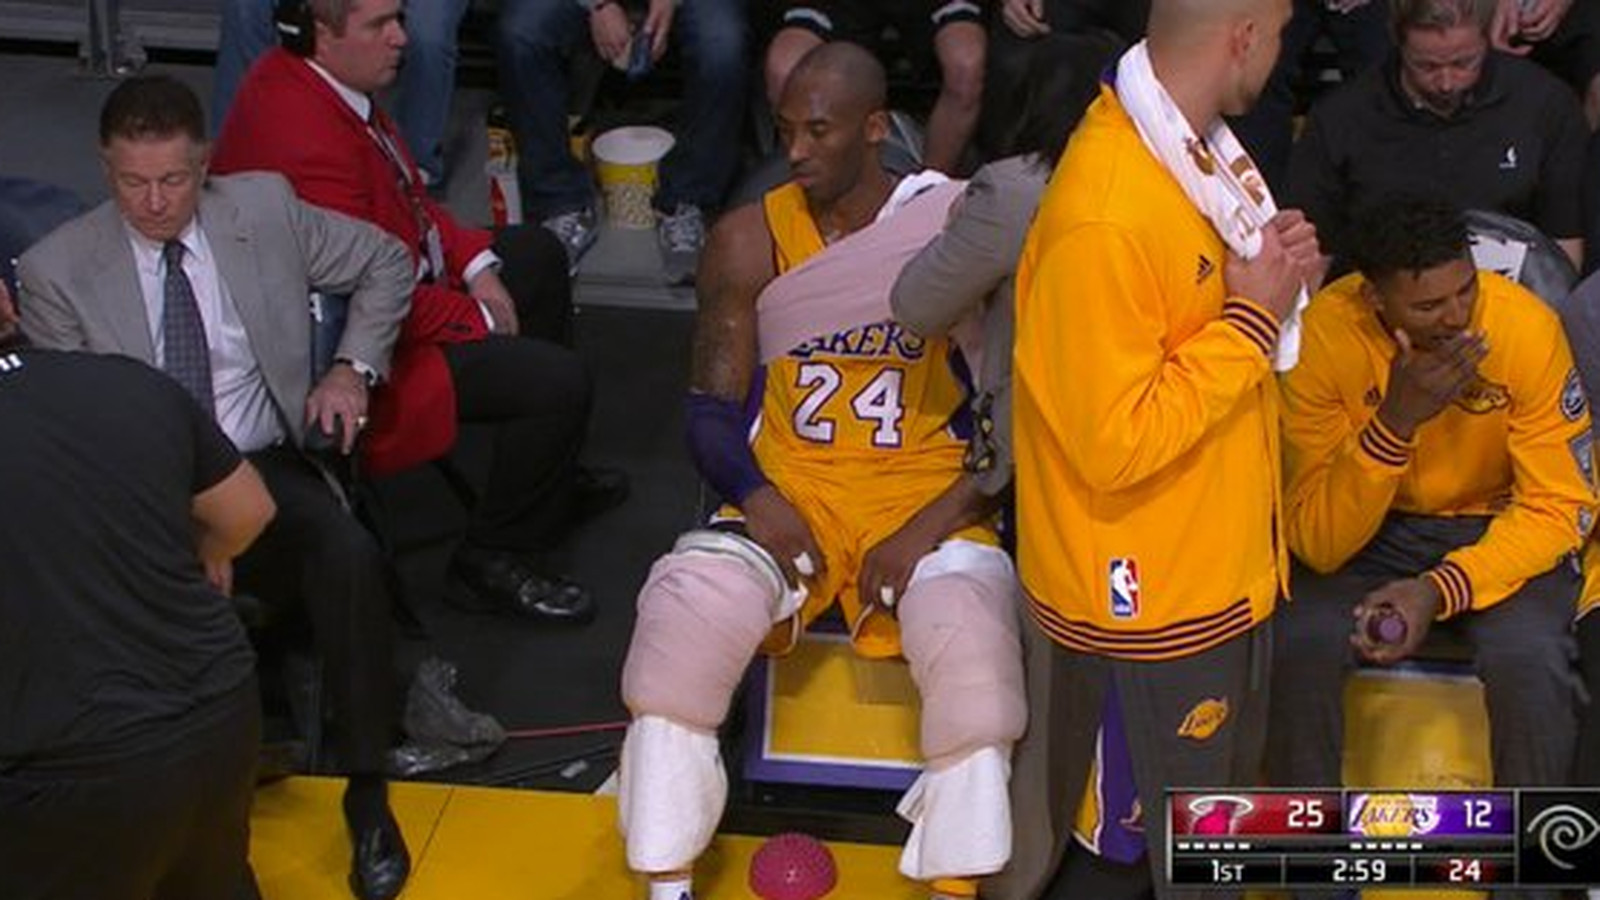 Kobe Bryant needs so many ice packs and wraps he looks like the dang Michelin Man - SBNation.com